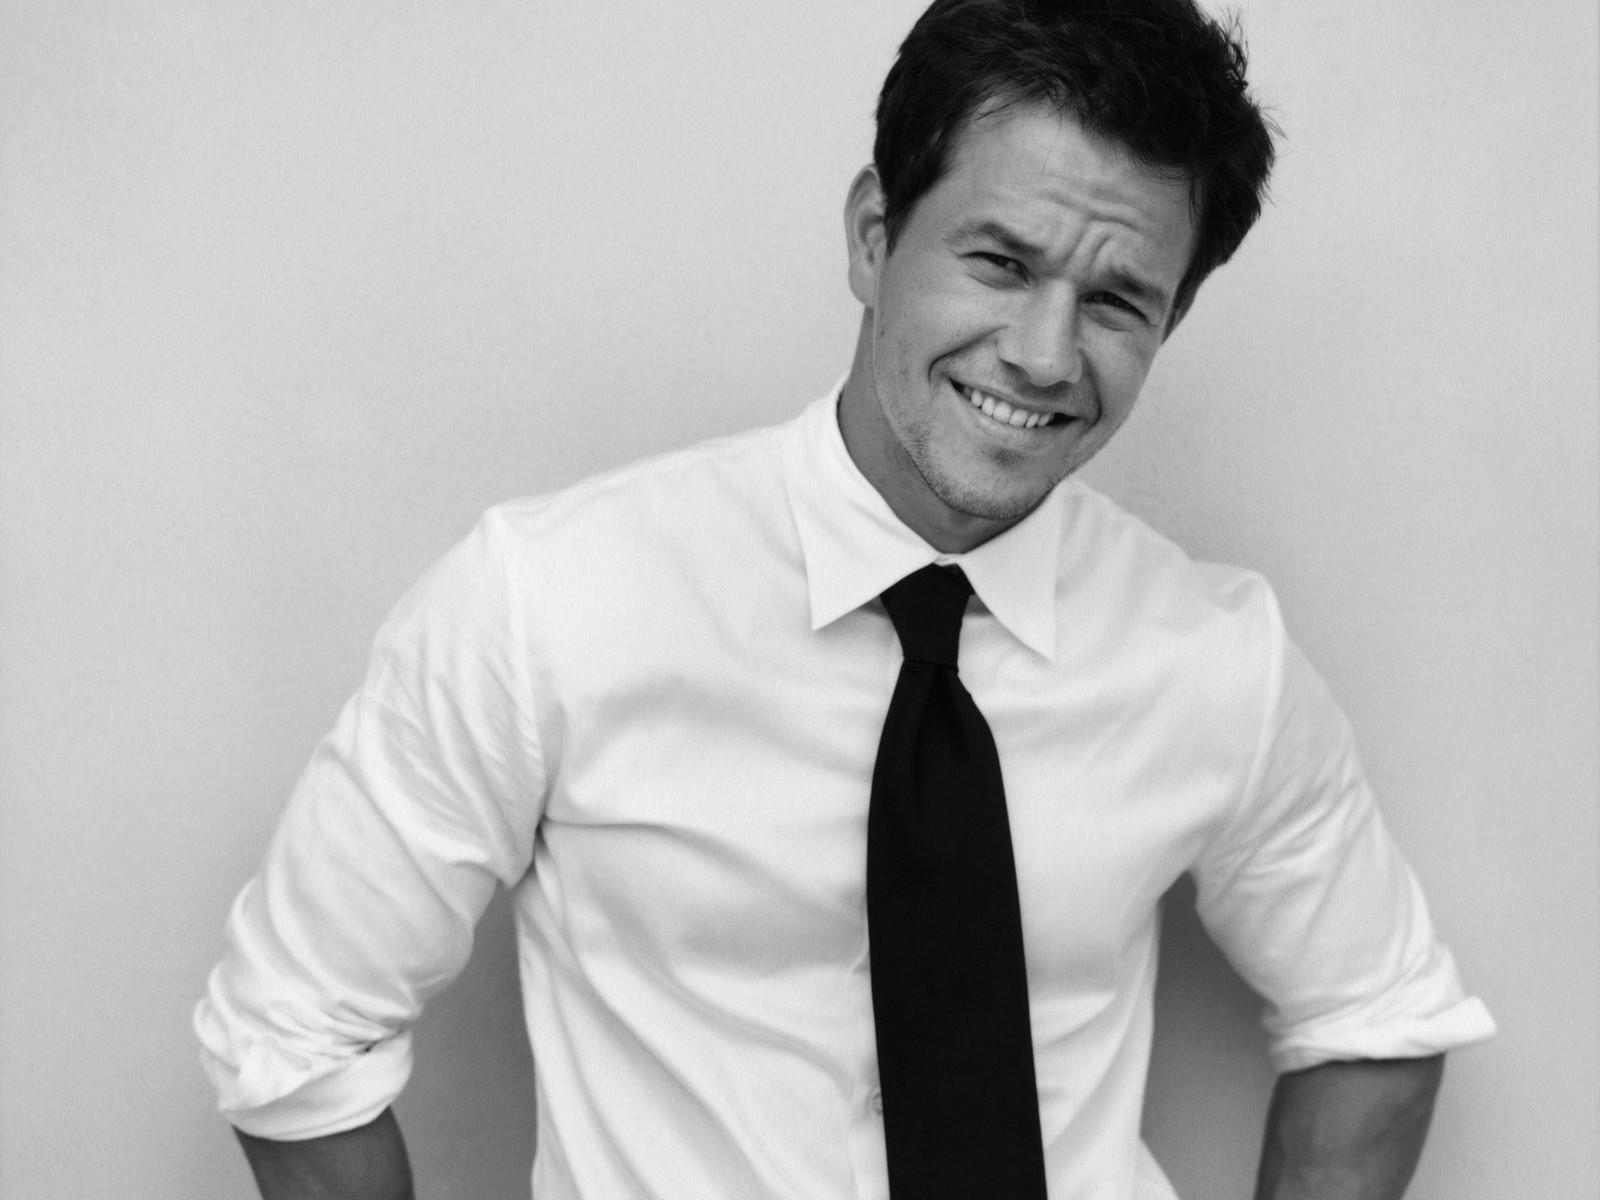 1600x1200 - Mark Wahlberg Wallpapers 12